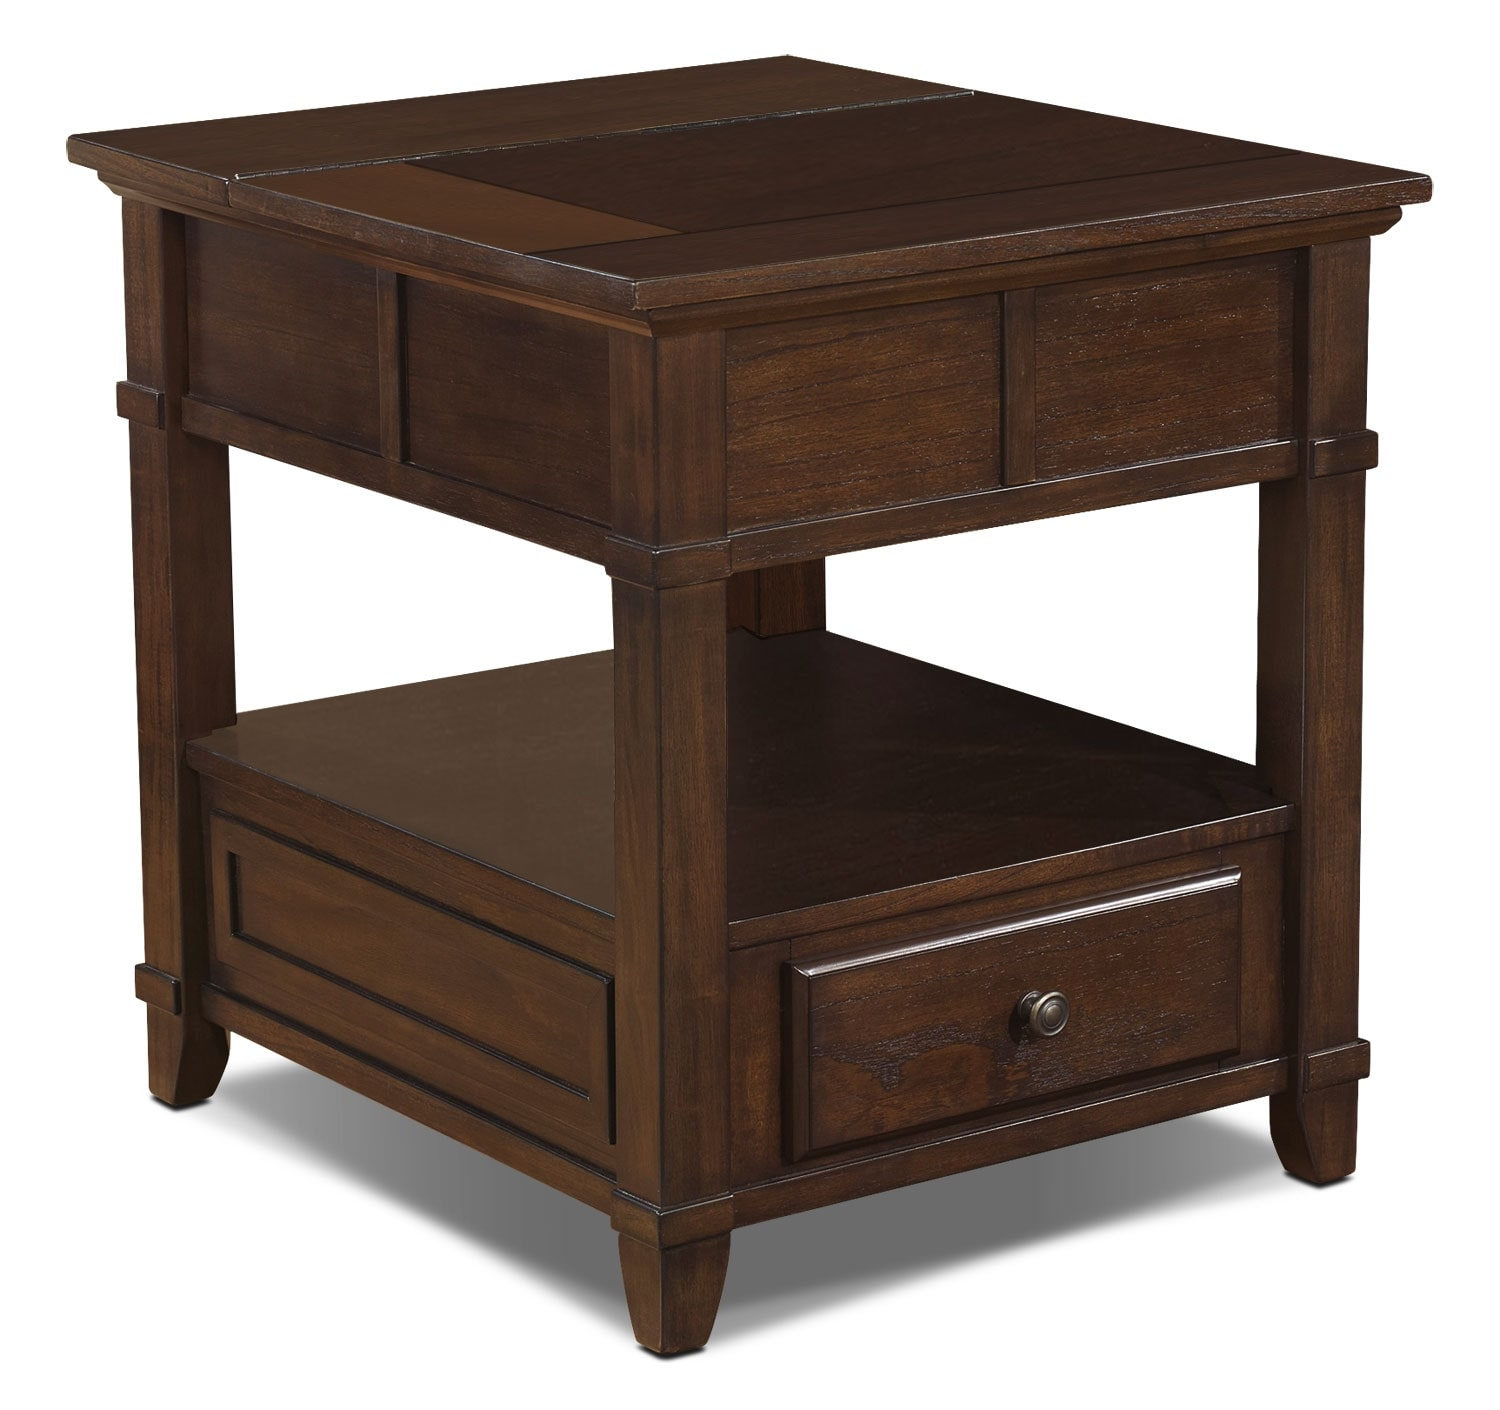 Gately Ottoman Coffee Table With Lift-Top